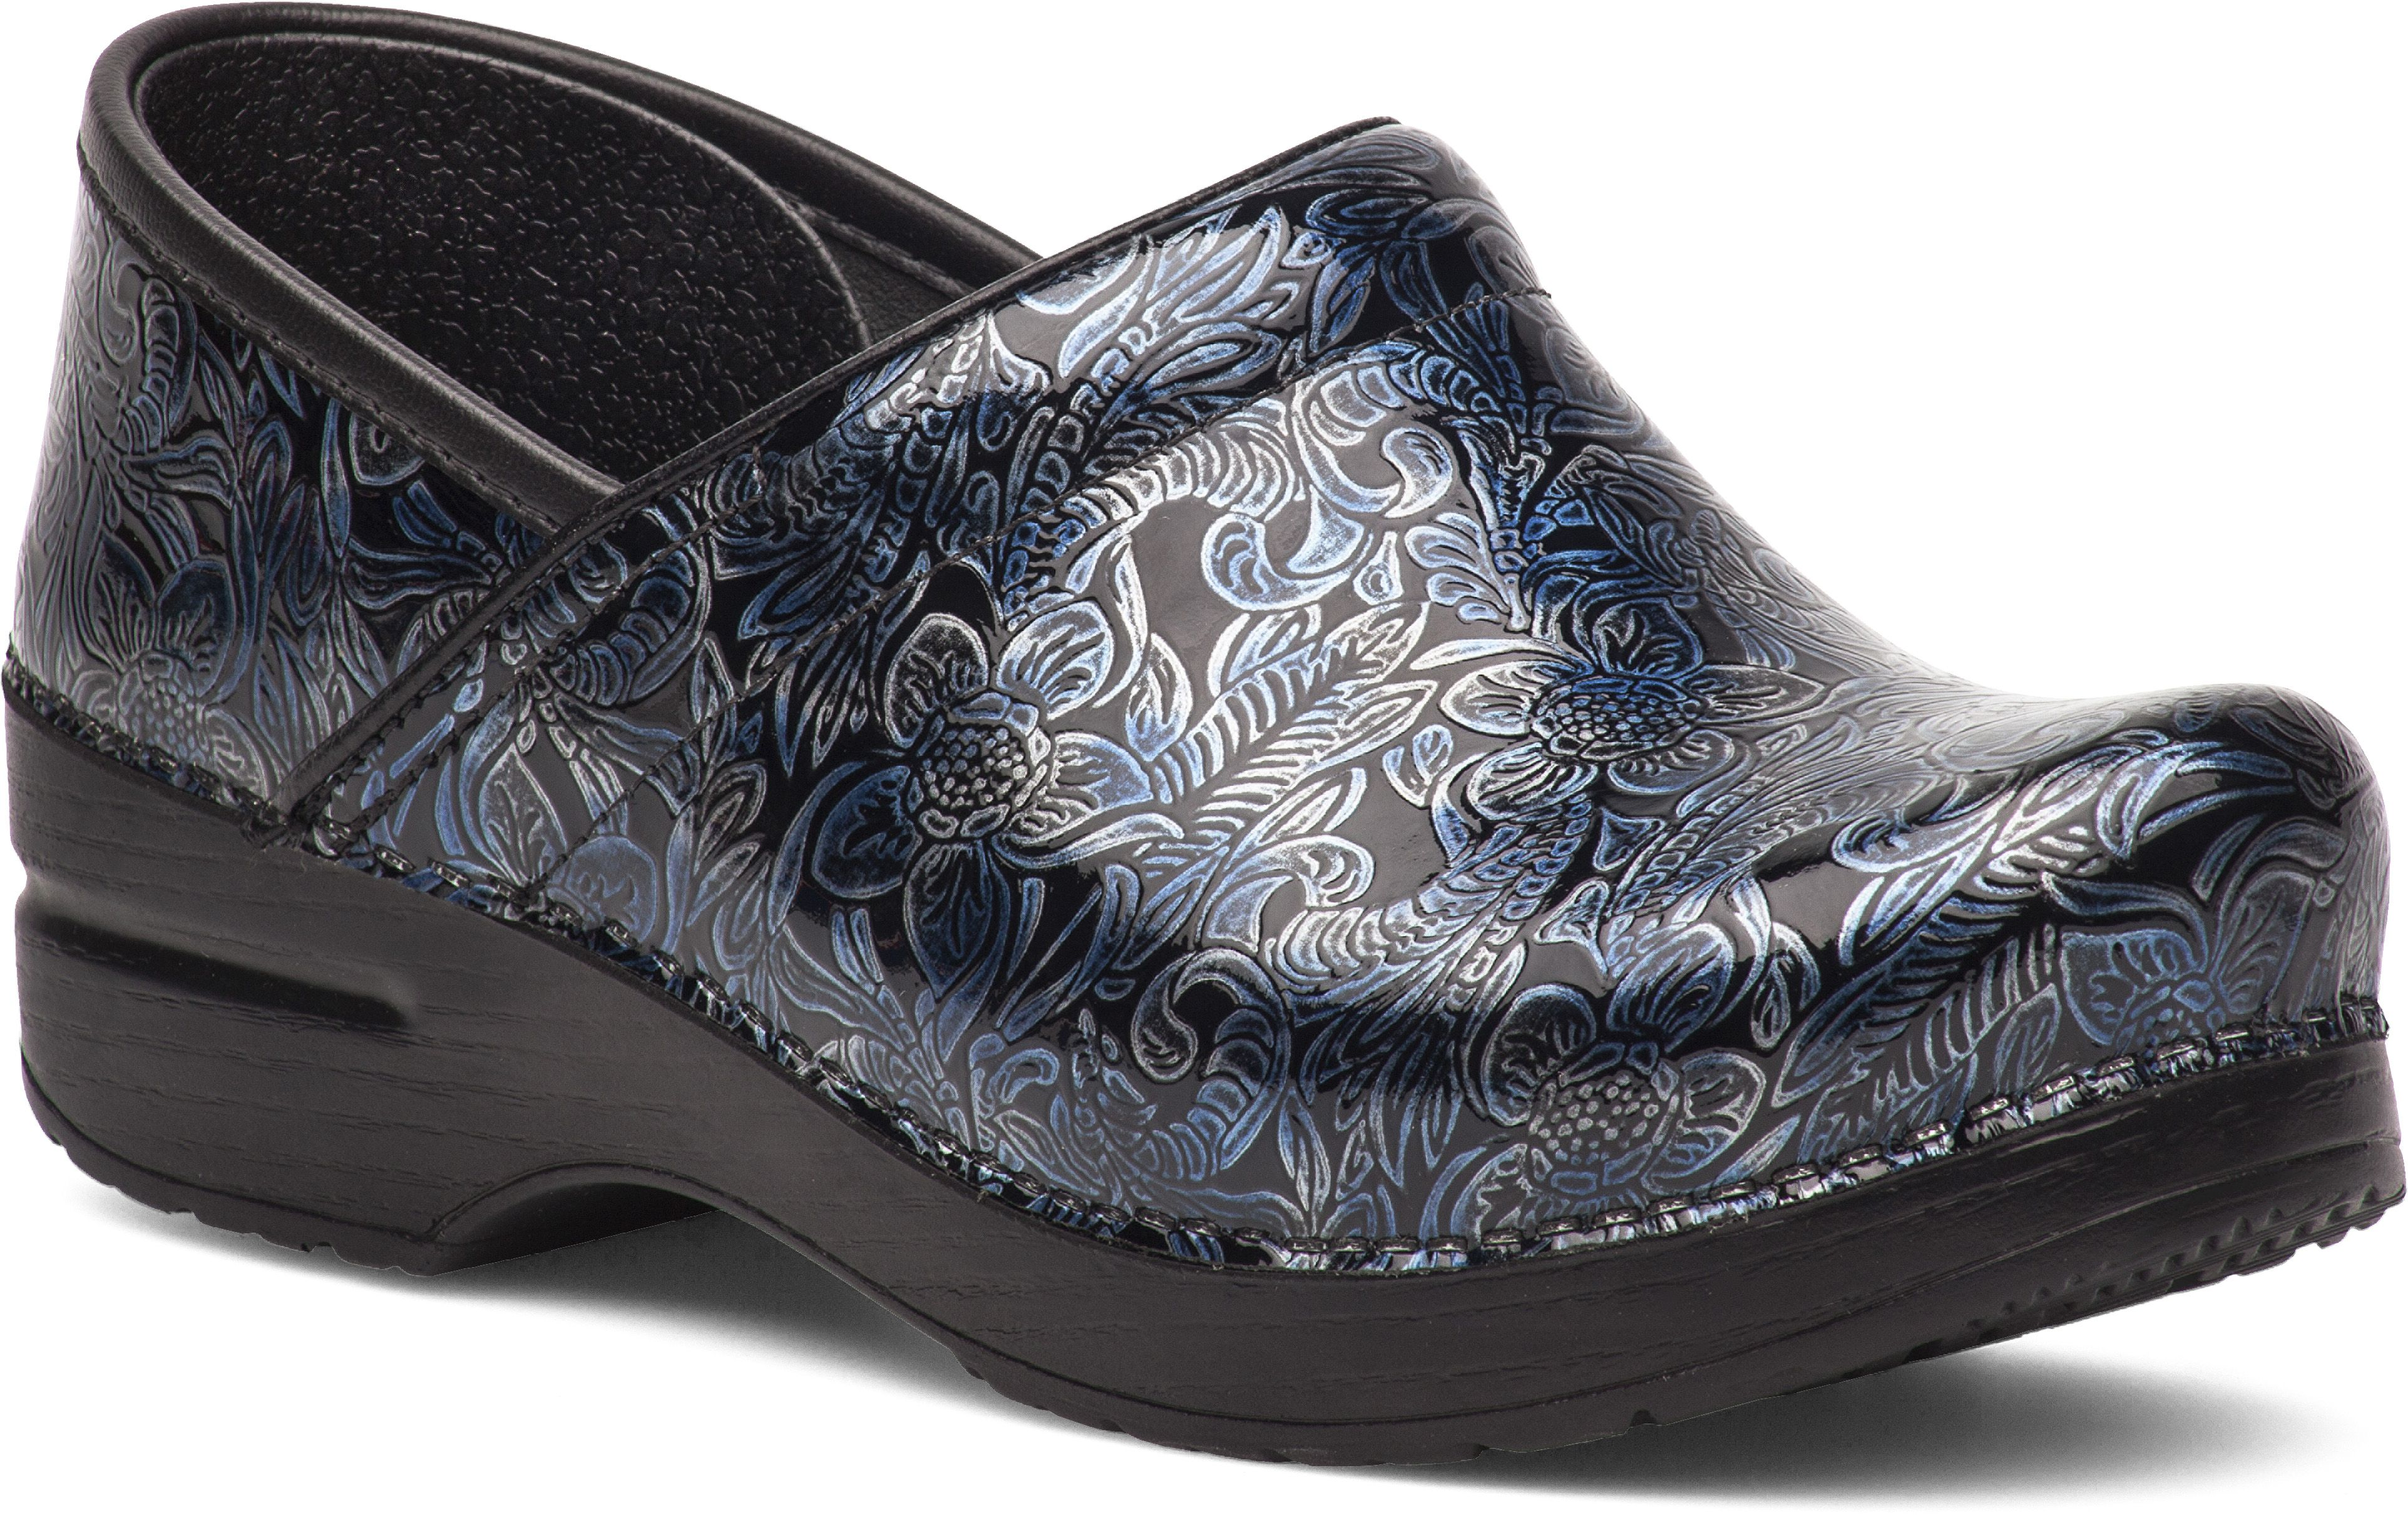 26b19ddd6114e The Professional Clog by Dansko in Silver/Blue Tooled Patent Leather ...